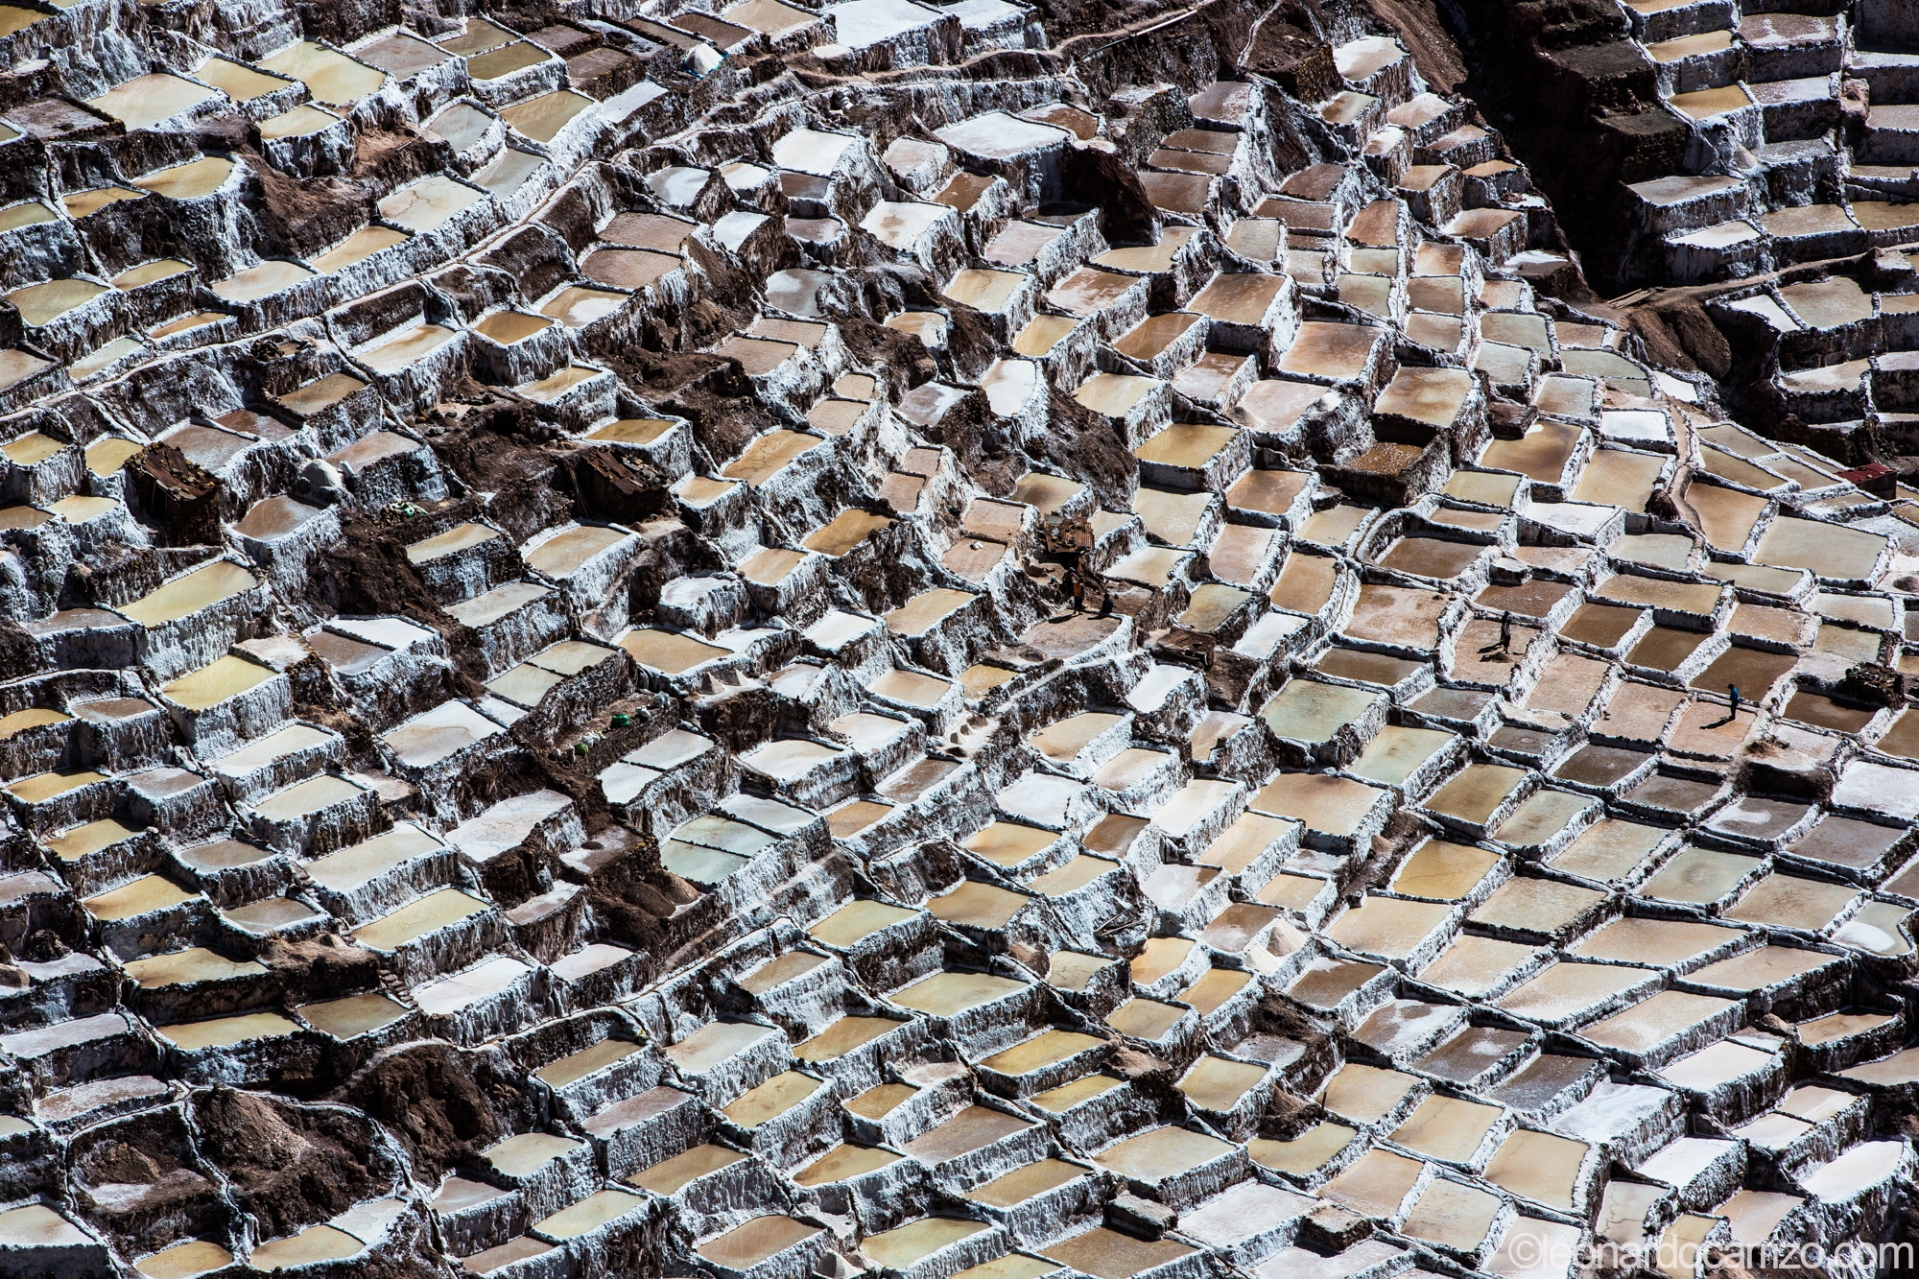 Inca salt mines in Maras, Sacred Valley, Peru. photo by Leonardo Carrizo